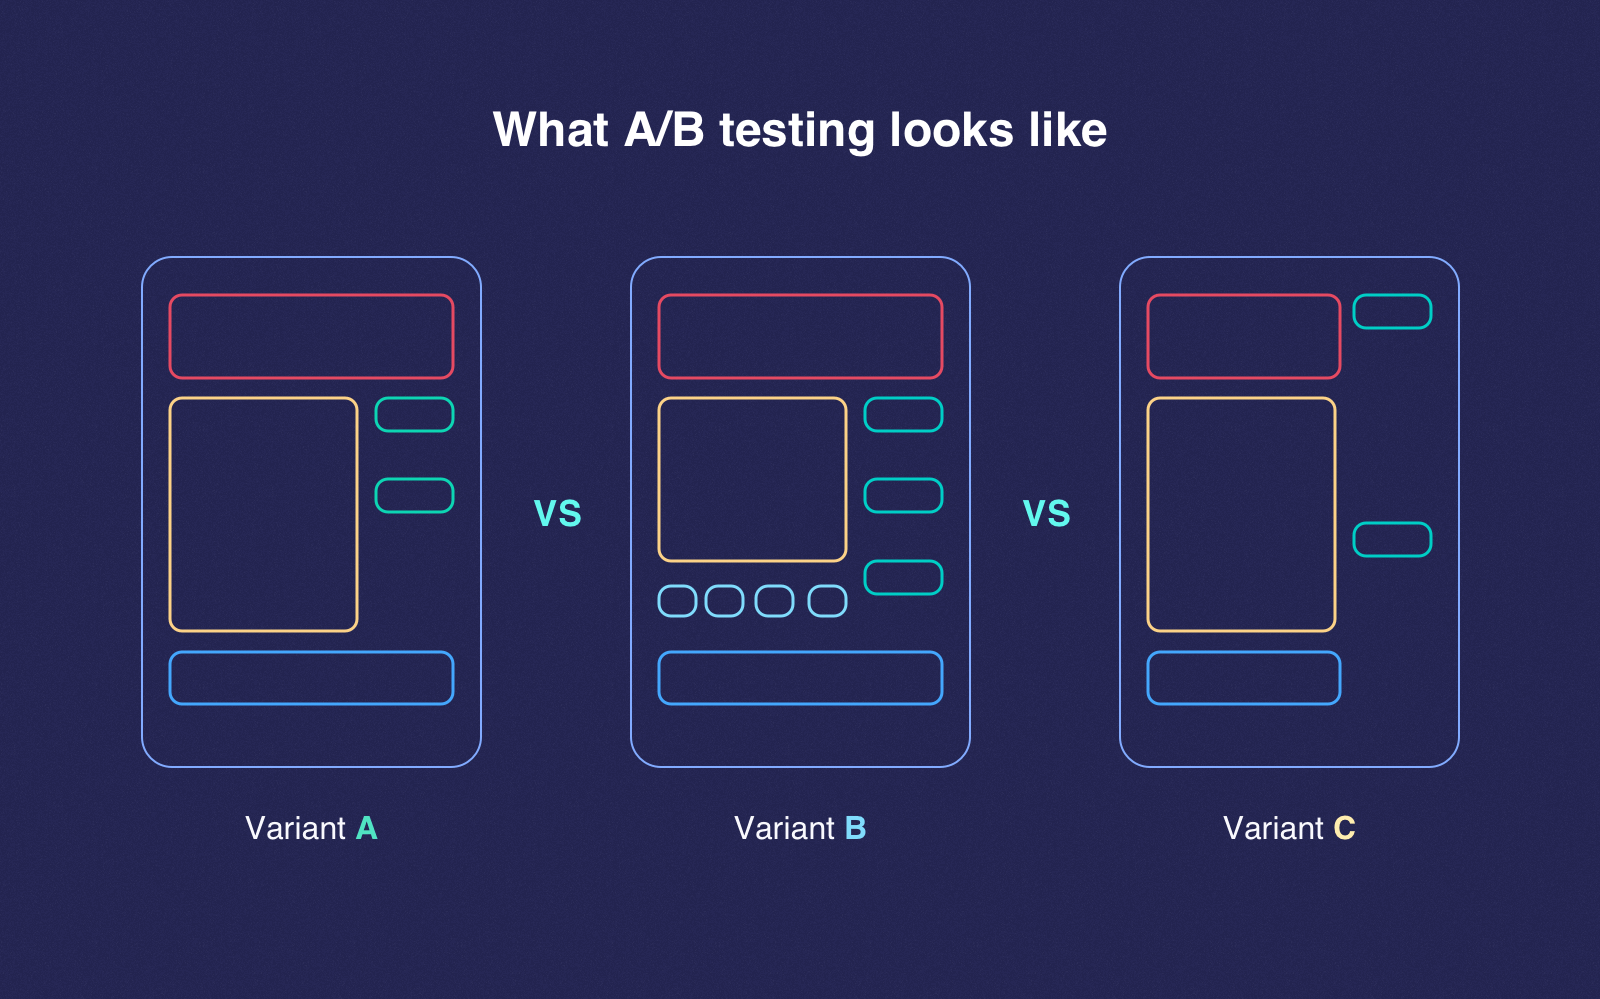 A/B testing is a great personalization tool that you can use